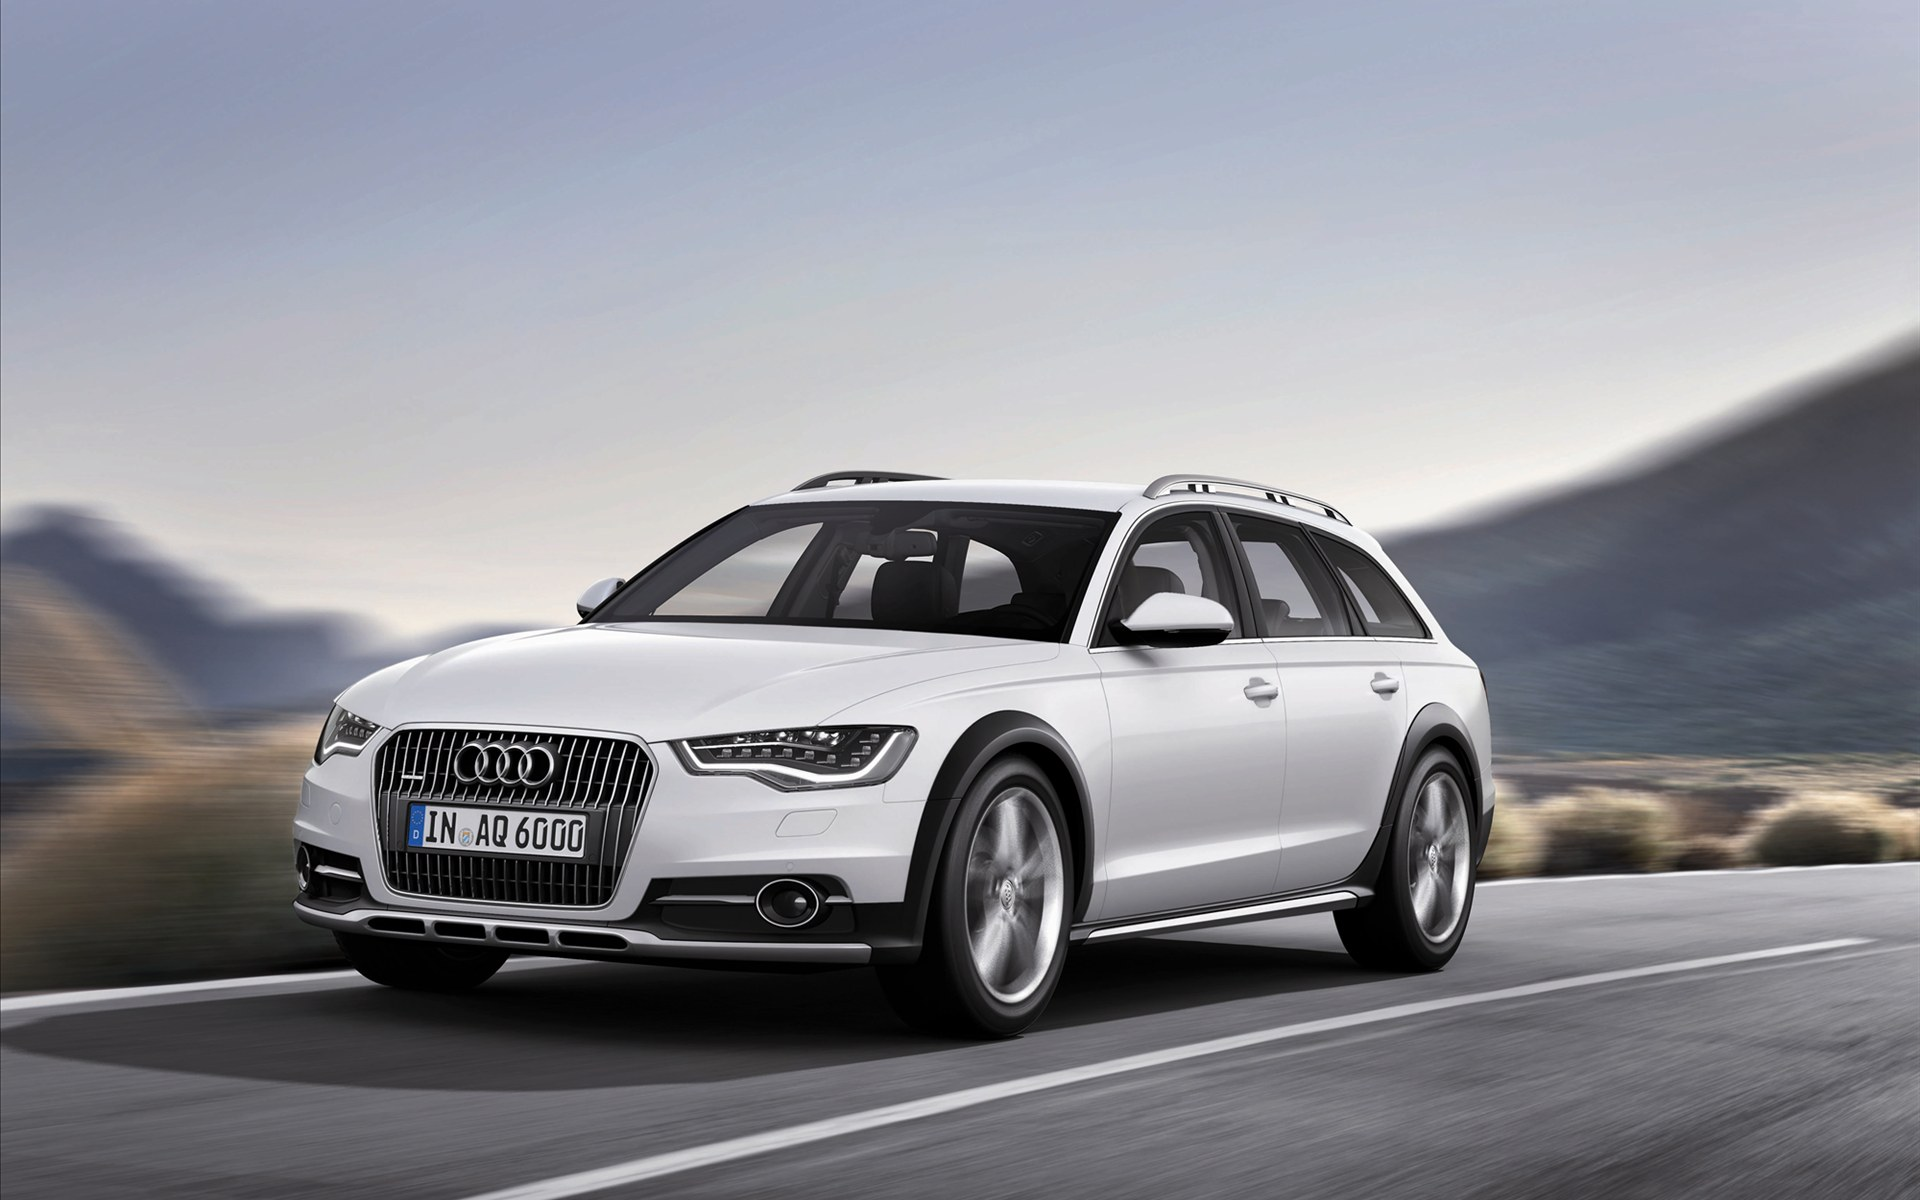 audi a6 quattro 2012 wallpaper hd car wallpapers id 2410. Black Bedroom Furniture Sets. Home Design Ideas